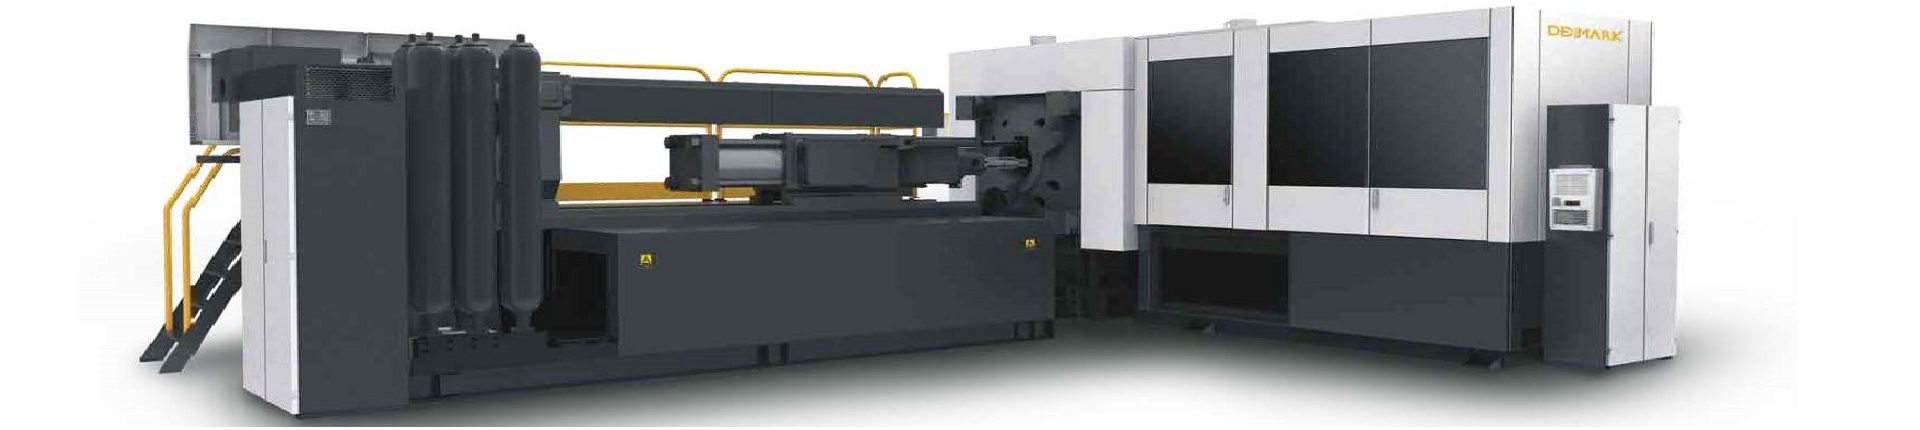 iPET High Speed Preform Injection System Image